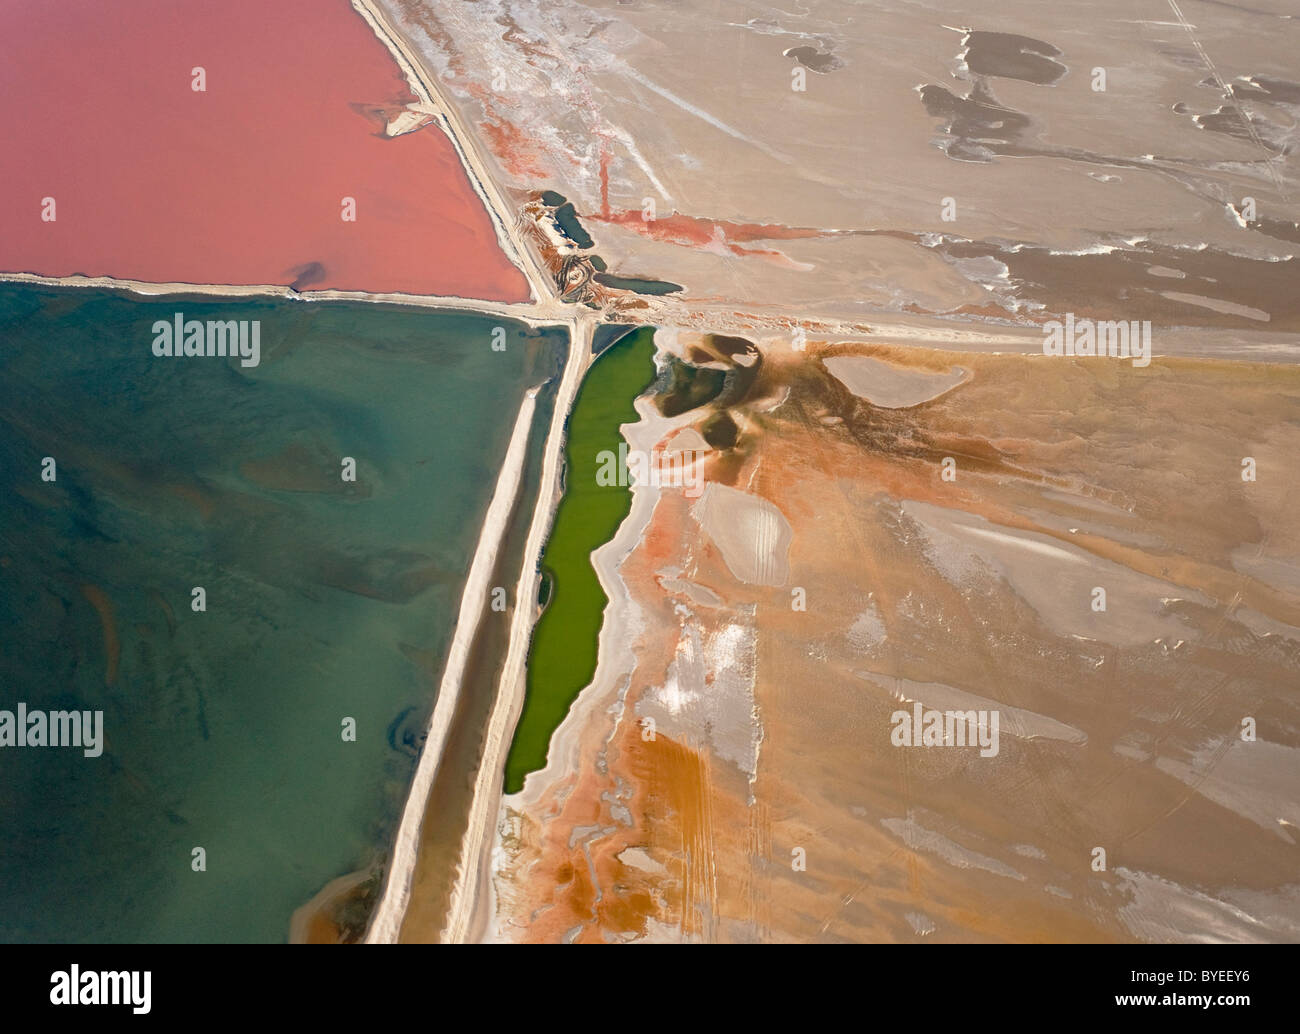 Aerial view of saline water at the salt works of Walvis Bay between Namib Desert and Atlantic Ocean. - Stock Image